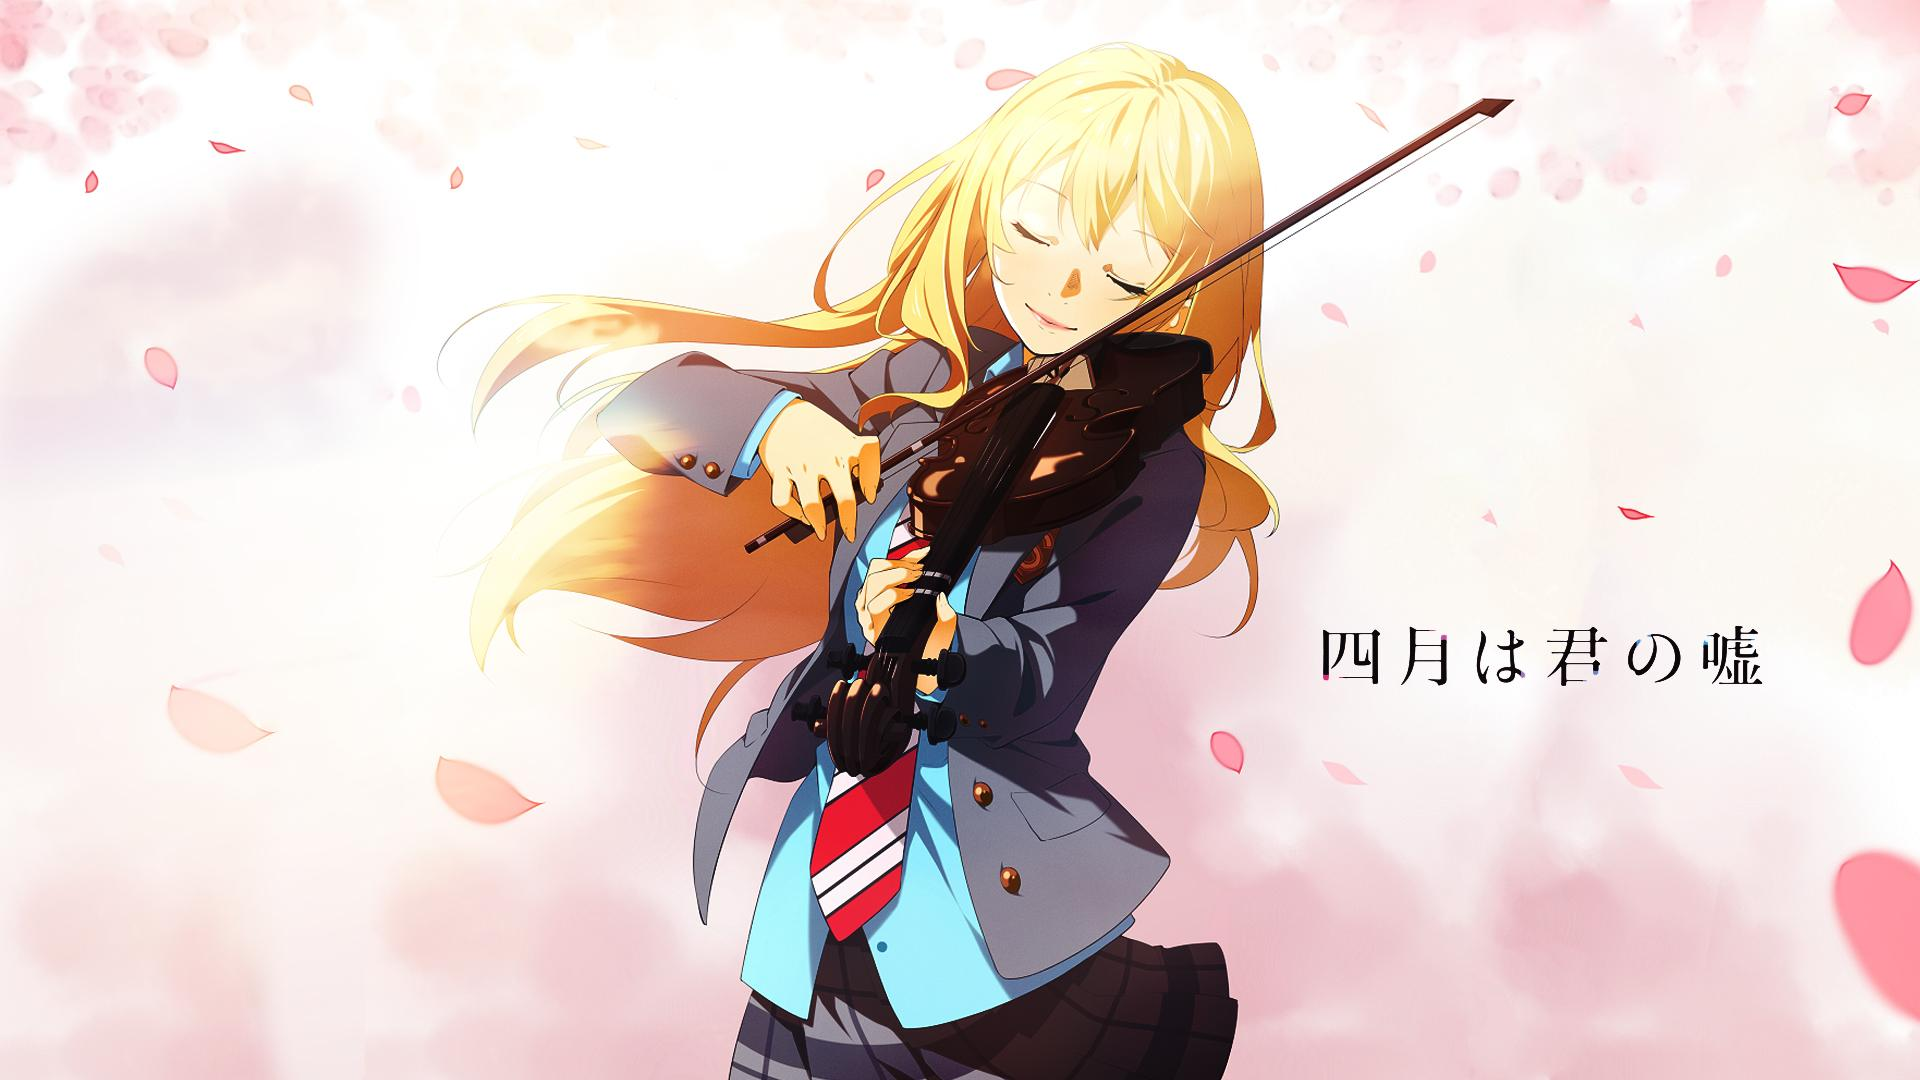 Your Lie In April Hd Wallpaper Posted By Sarah Cunningham